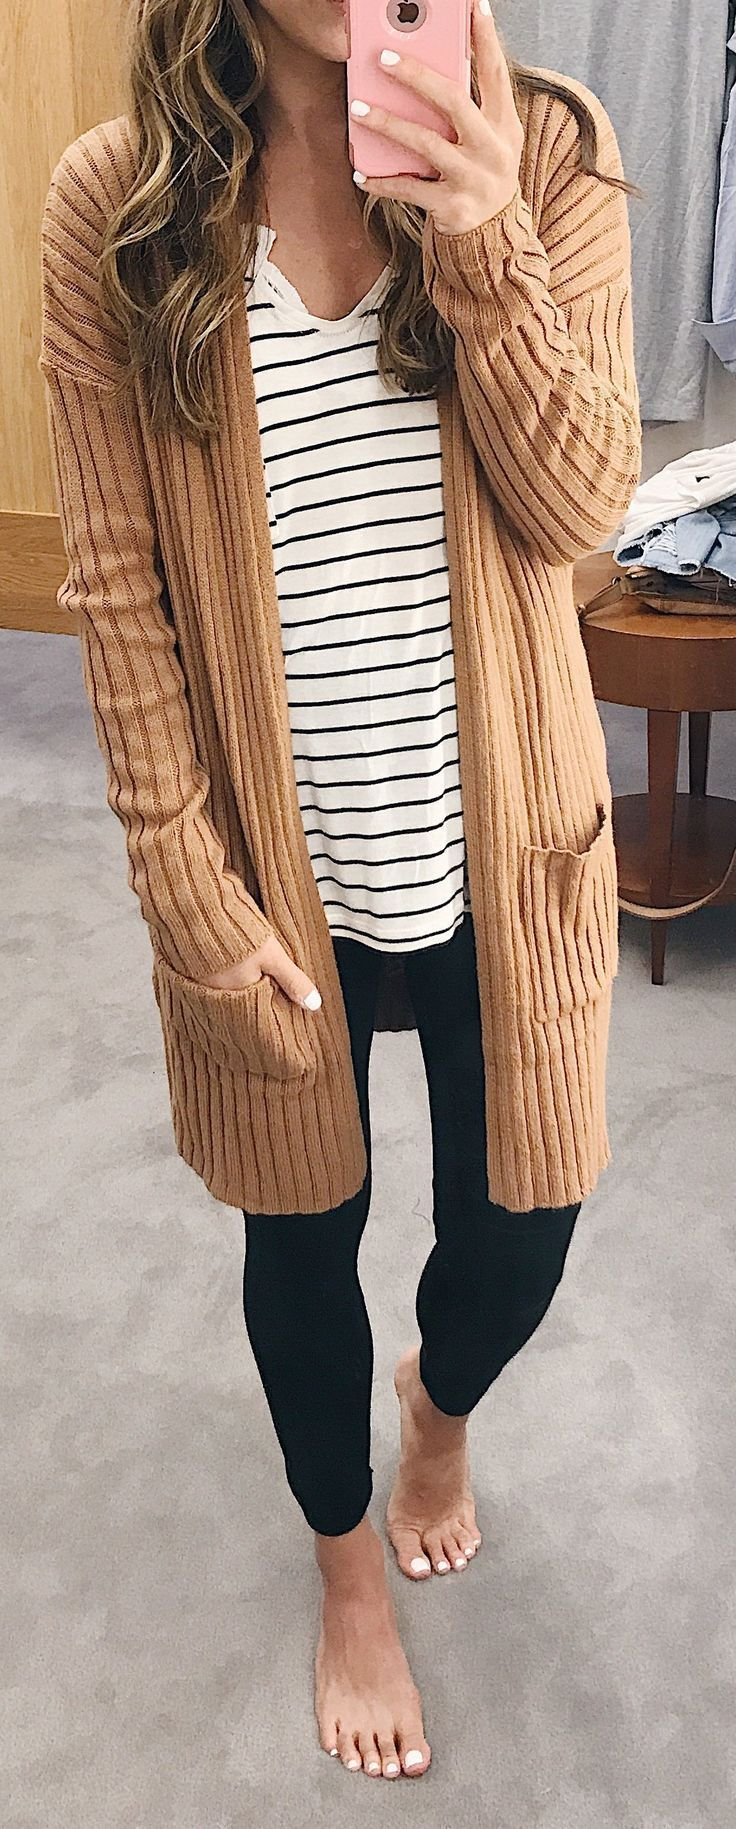 #fall #outfits women's beige cardigan, striped shirt and black leggings - Sale! Up to 75% OFF! Shop at Stylizio for women's and men's designer handbags, luxury sunglasses, watches, jewelry, purses, wallets, clothes, underwear & more! #womenclothingforfall